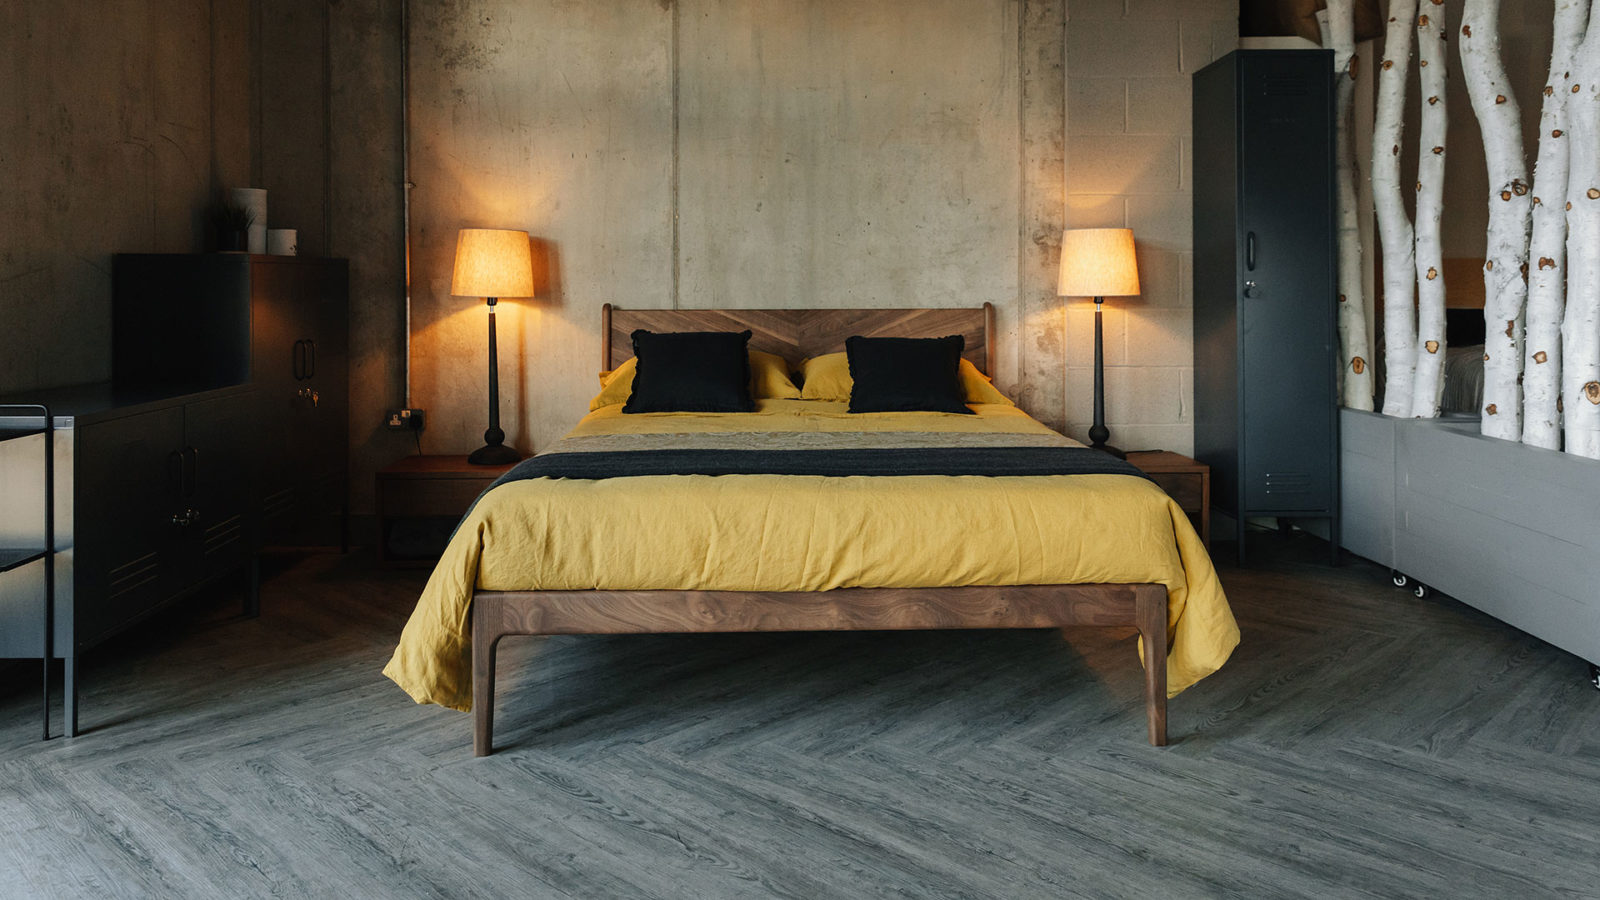 The Hoxton in walnut wood, a mid-century look bed with chevron pattern headboard